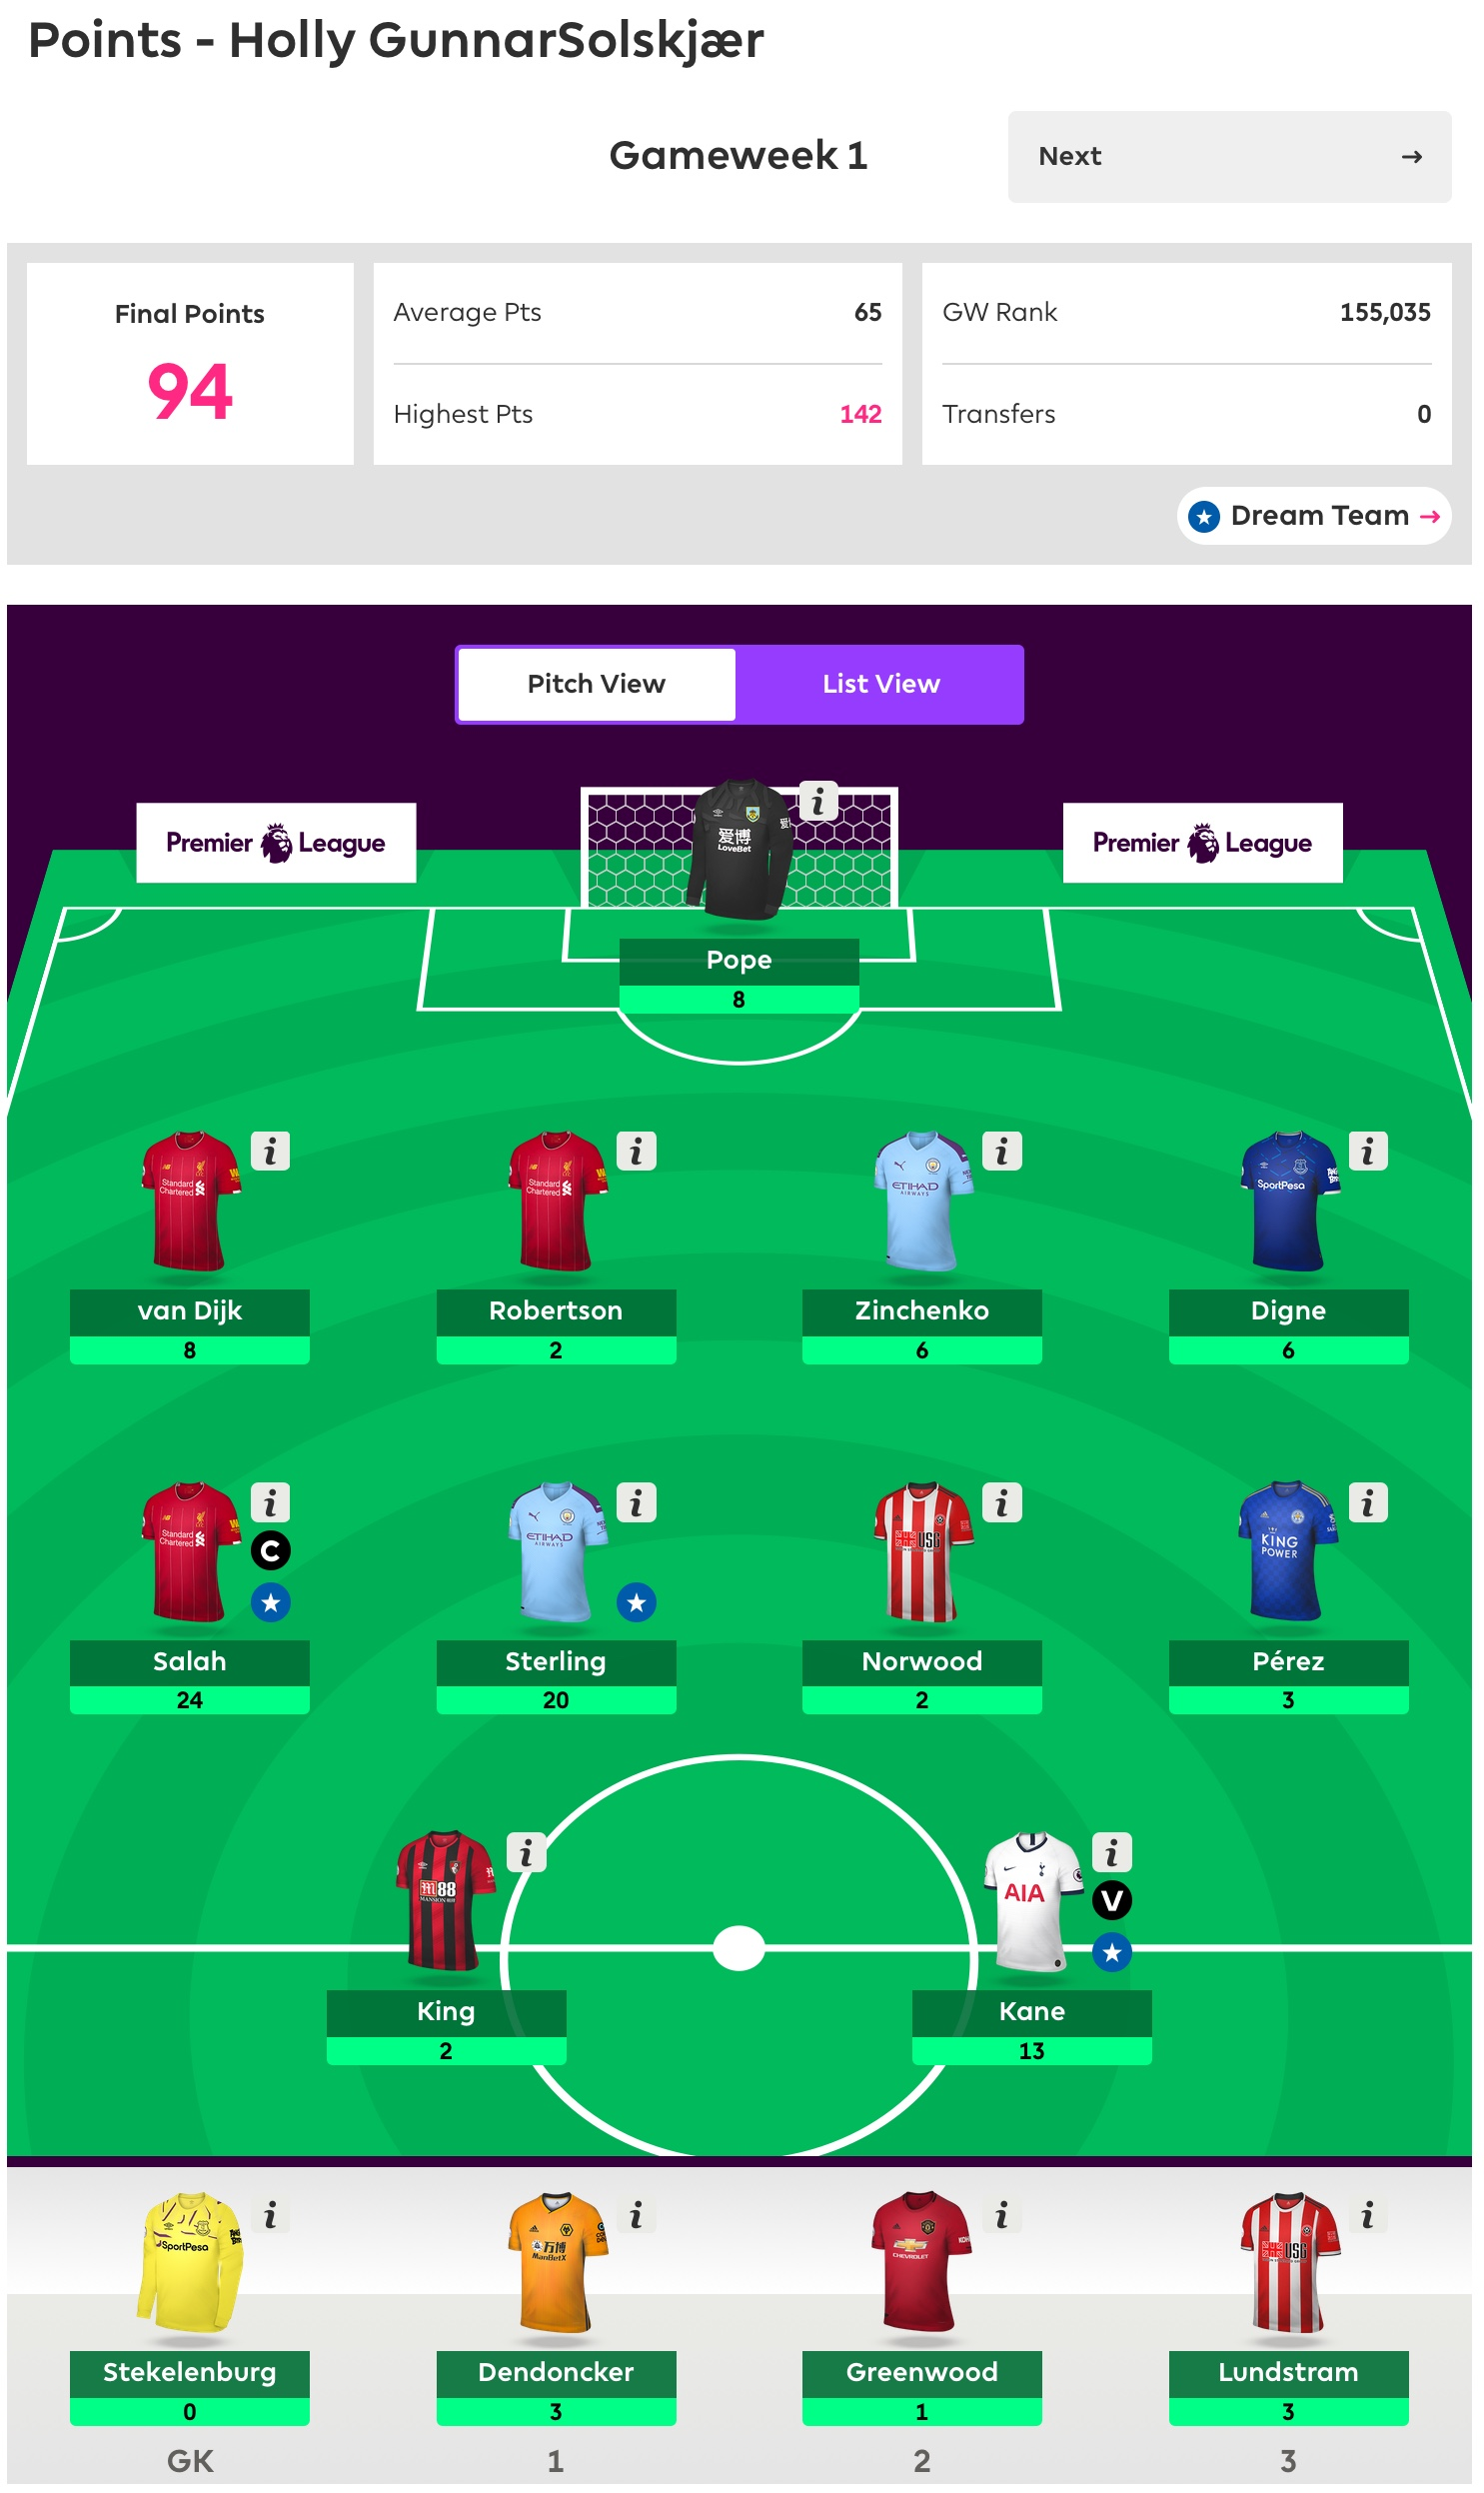 Gameweek 1 Review